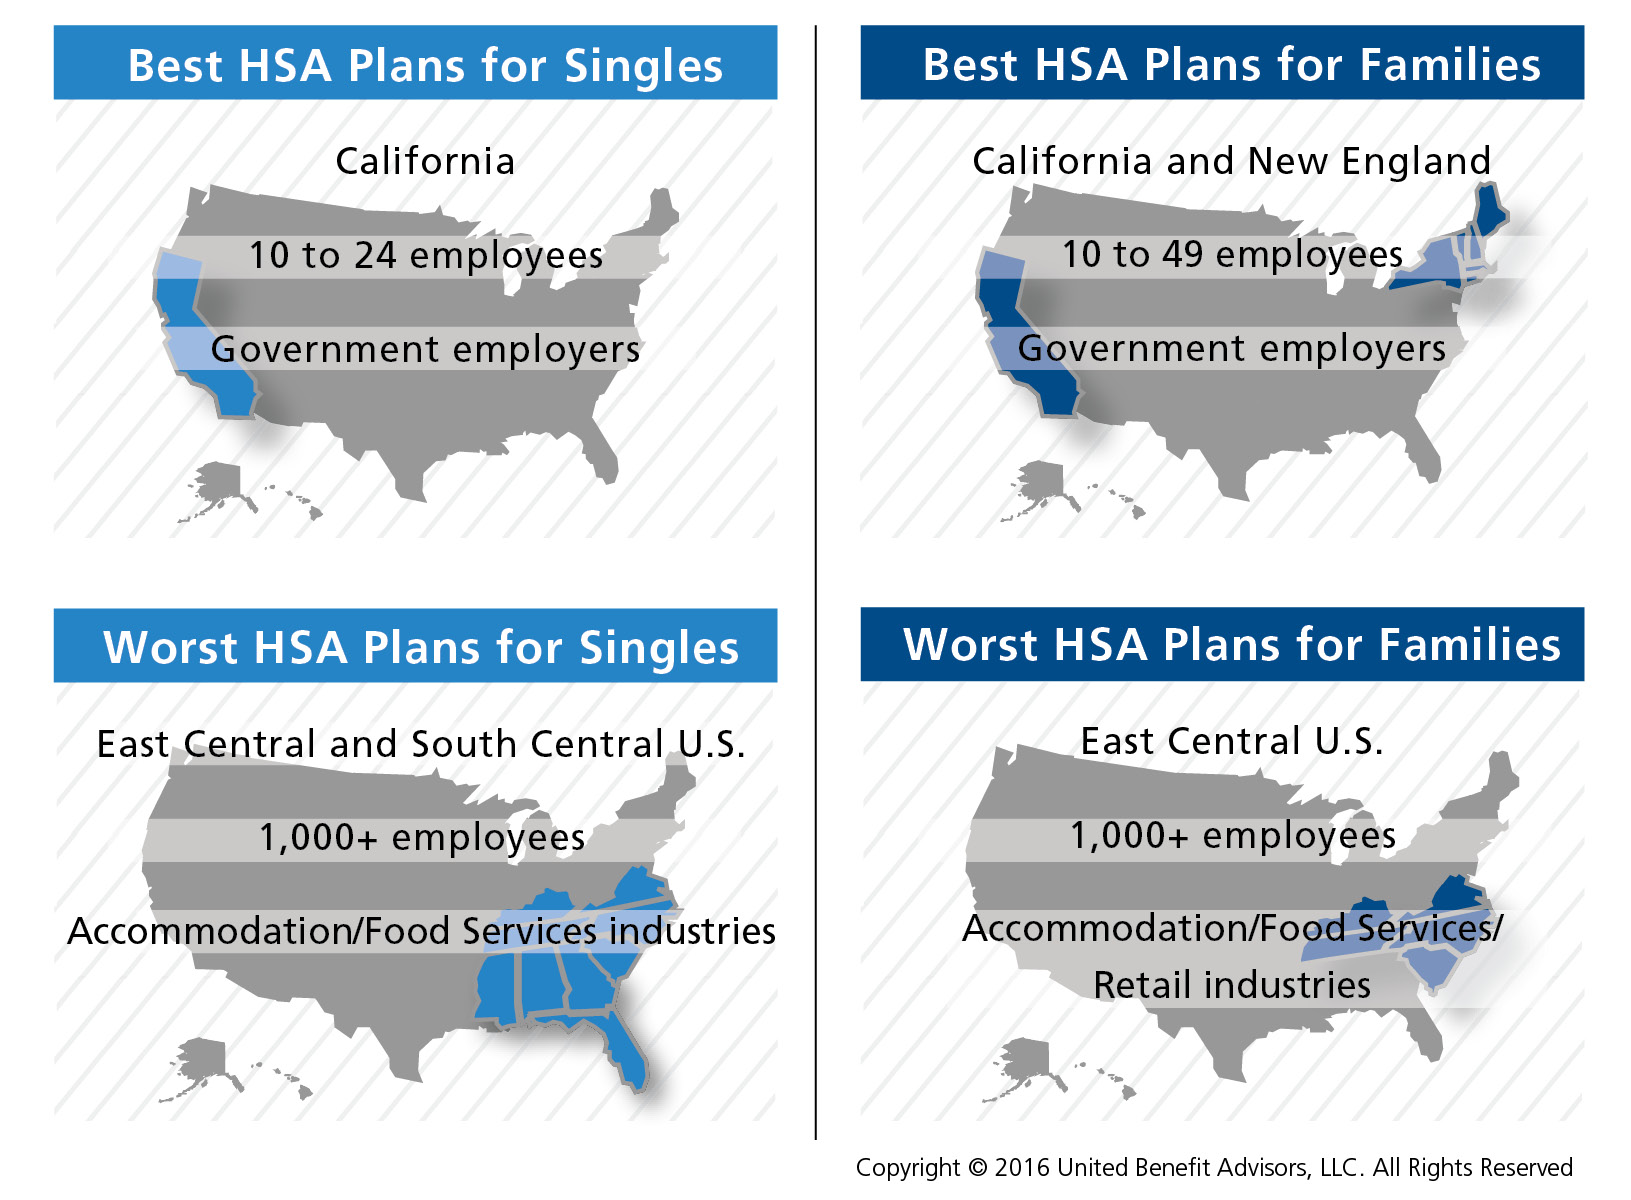 Best and worst HSA plans for singles, families